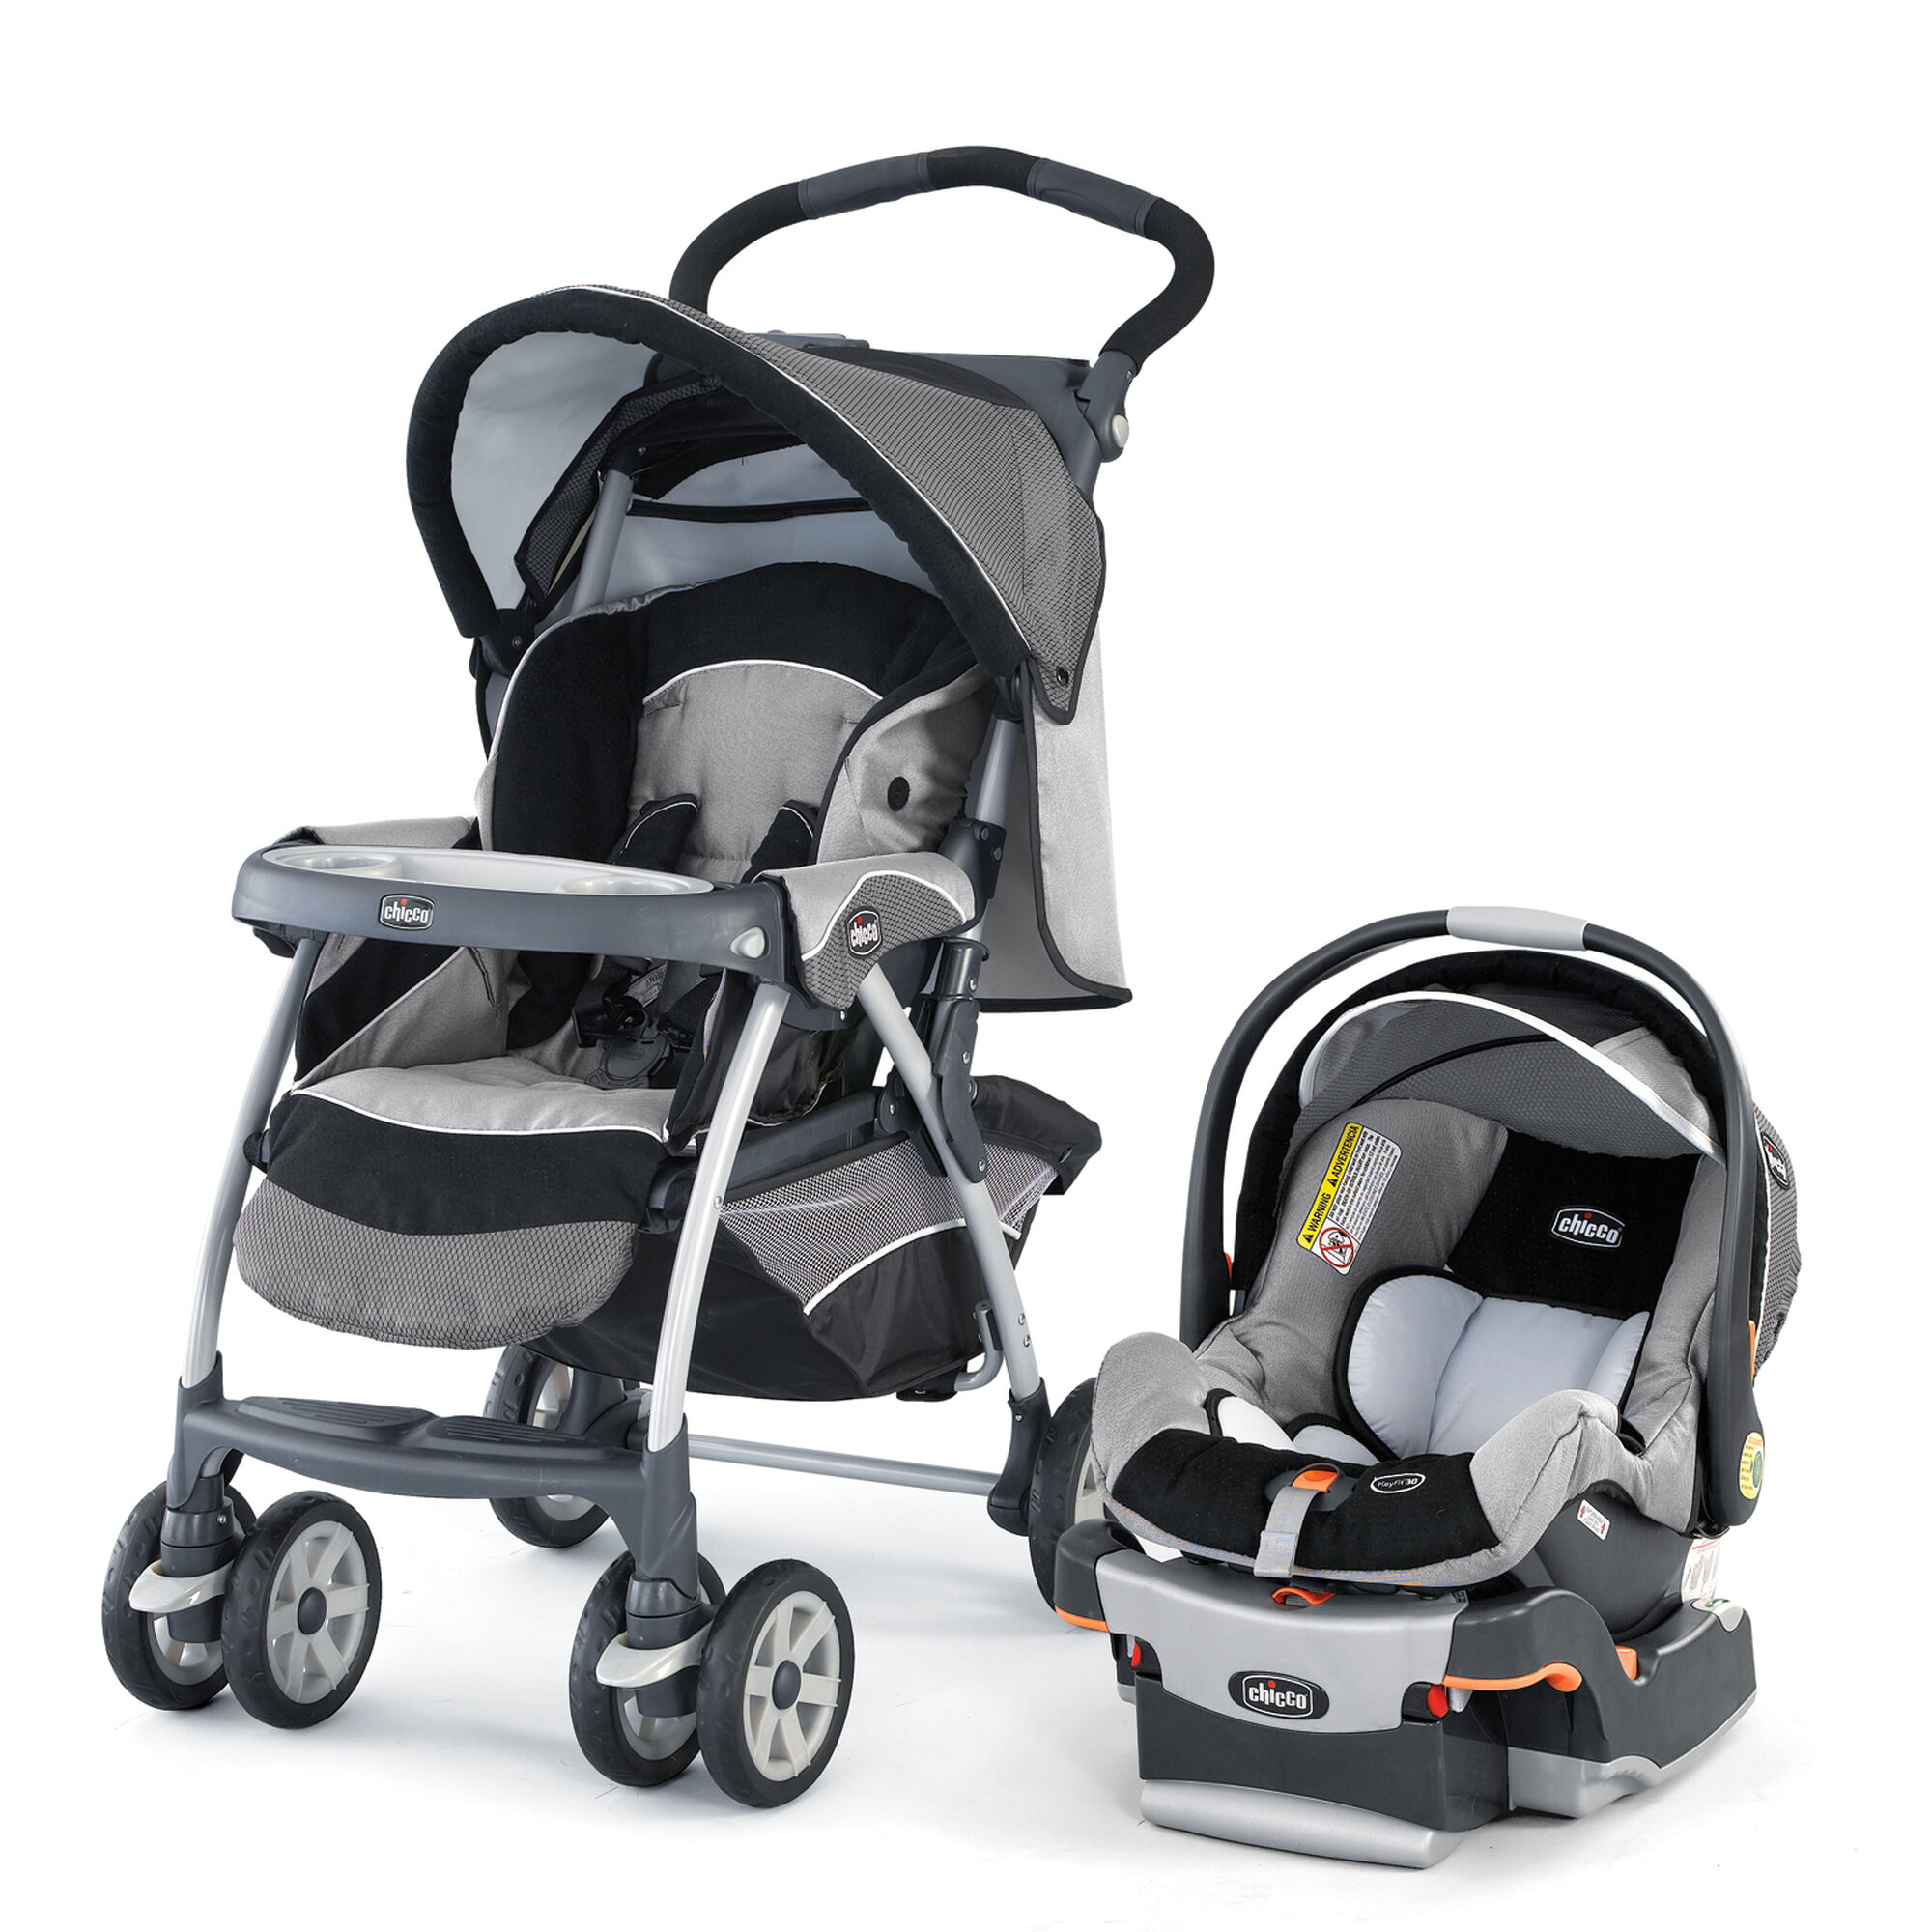 Safety Baby Travel Systems